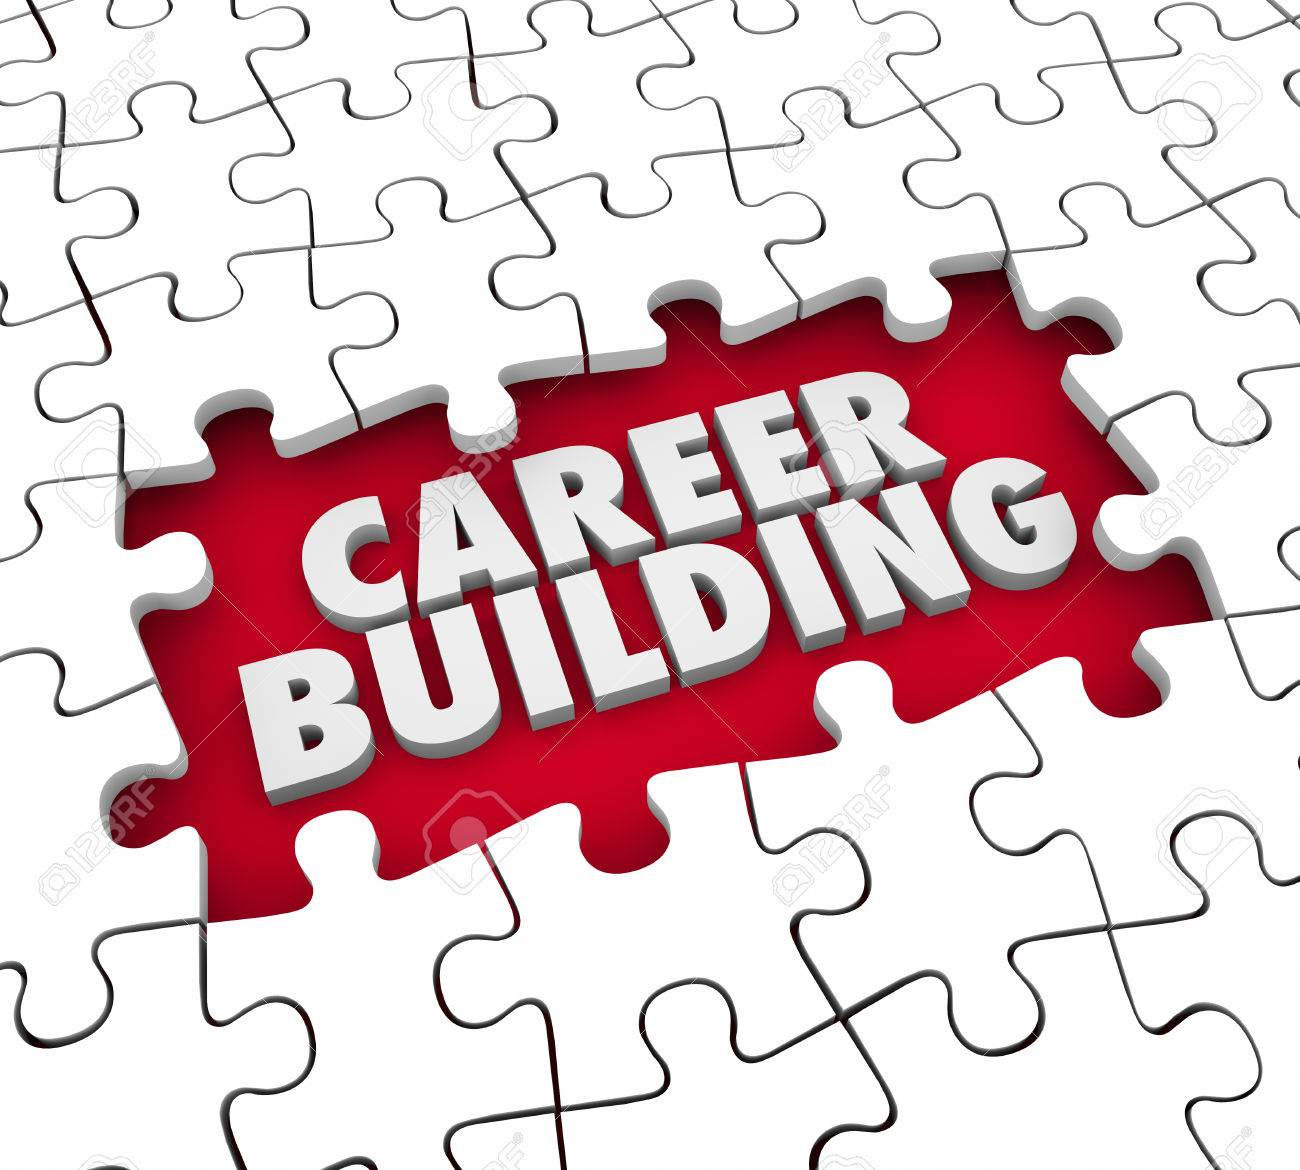 career building puzzle pieces starting a new job or position career building puzzle pieces starting a new job or position for experience skills and references